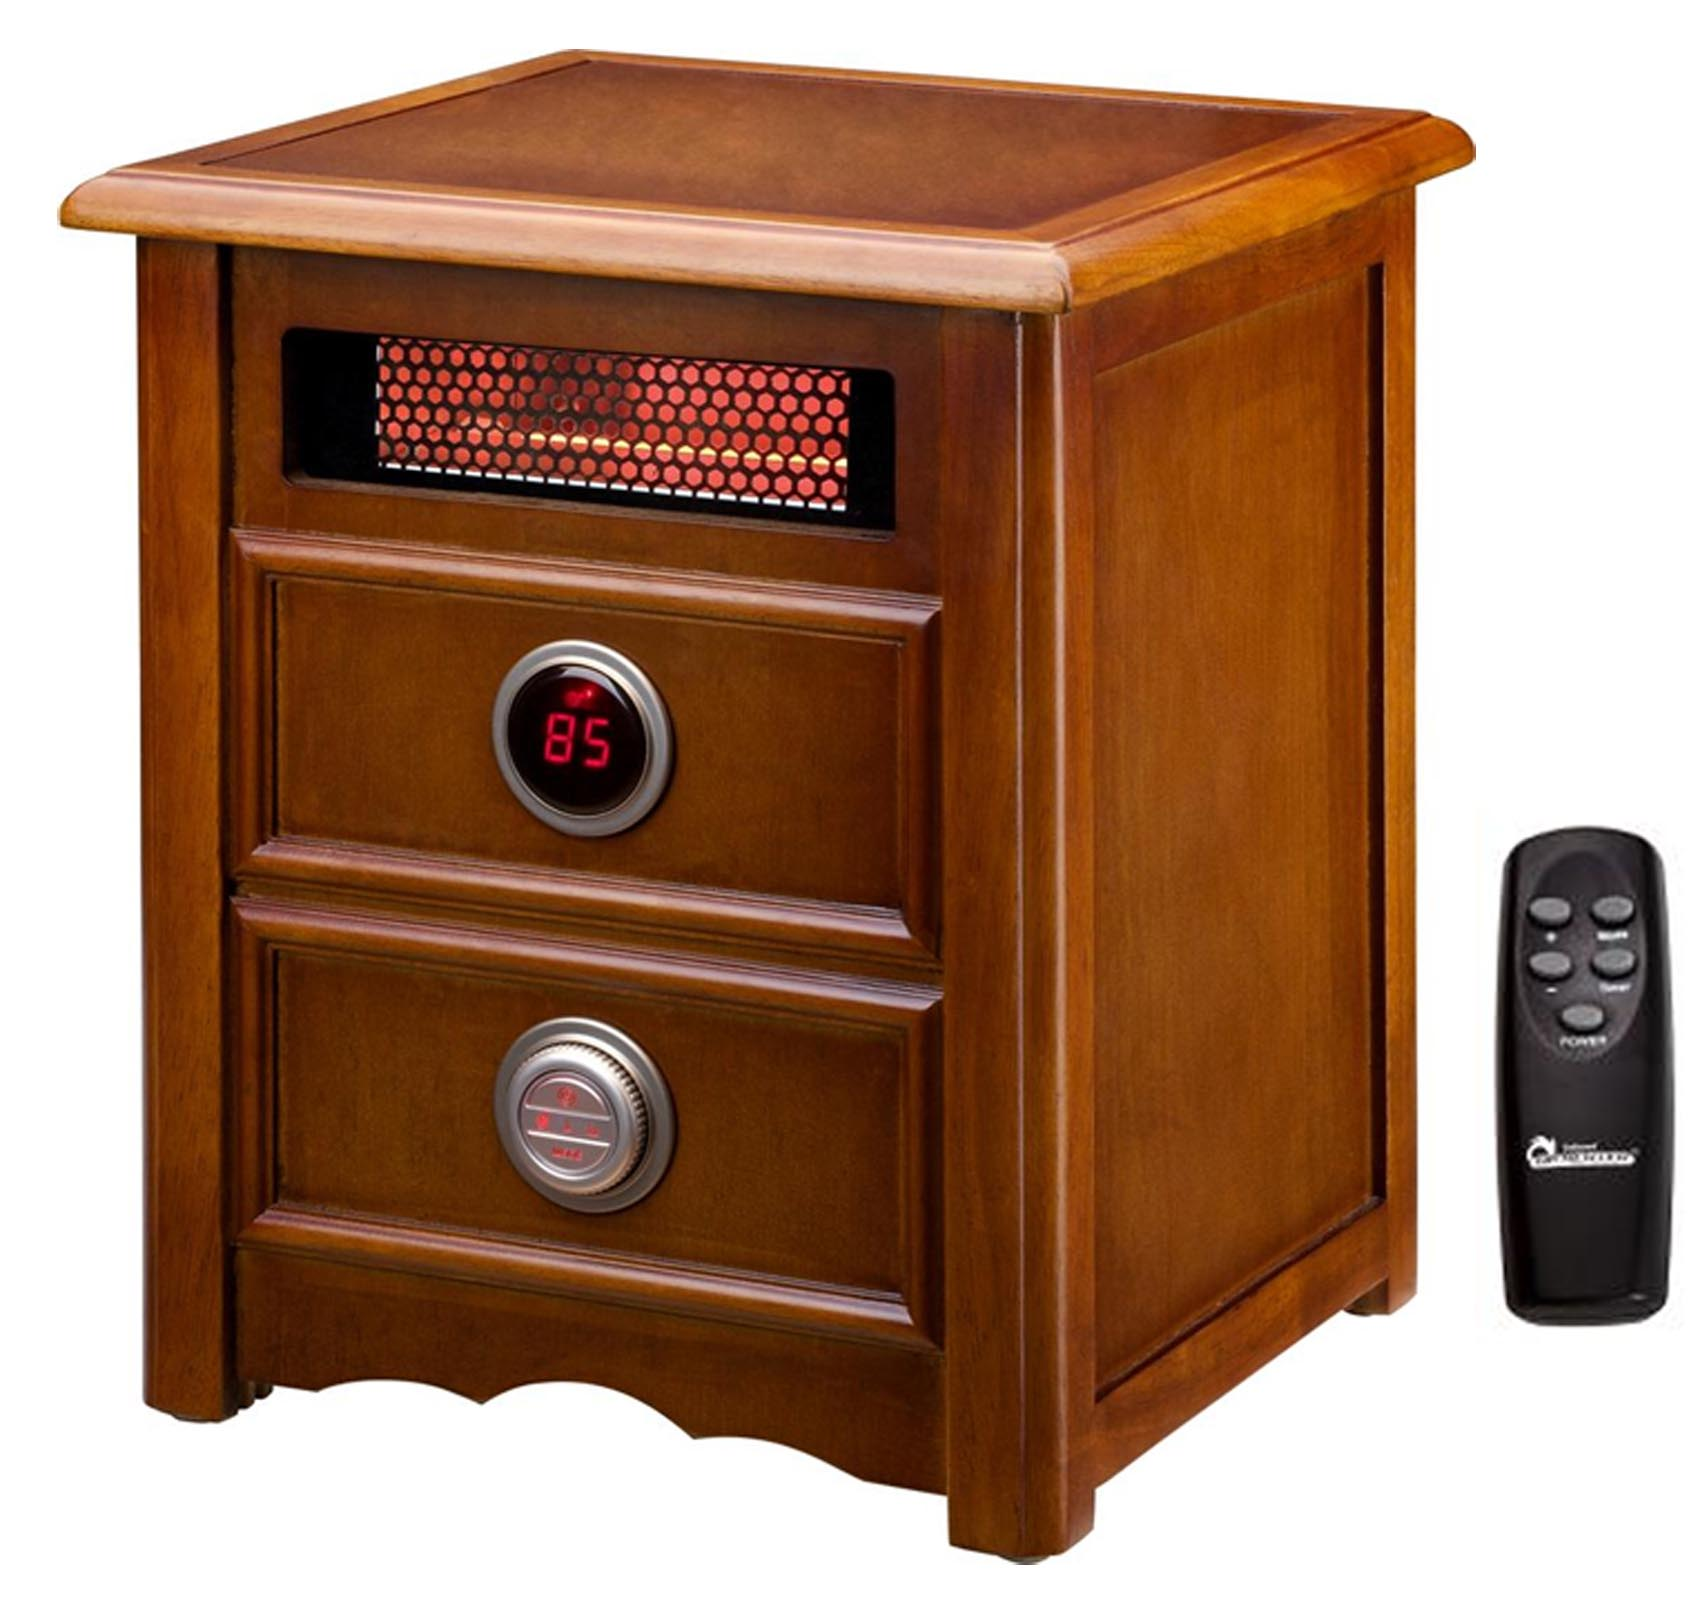 DR999 - Dr. Infrared Heater 1500W Electric Cherry Cabinet Nightstand Space Heater w/ Remote